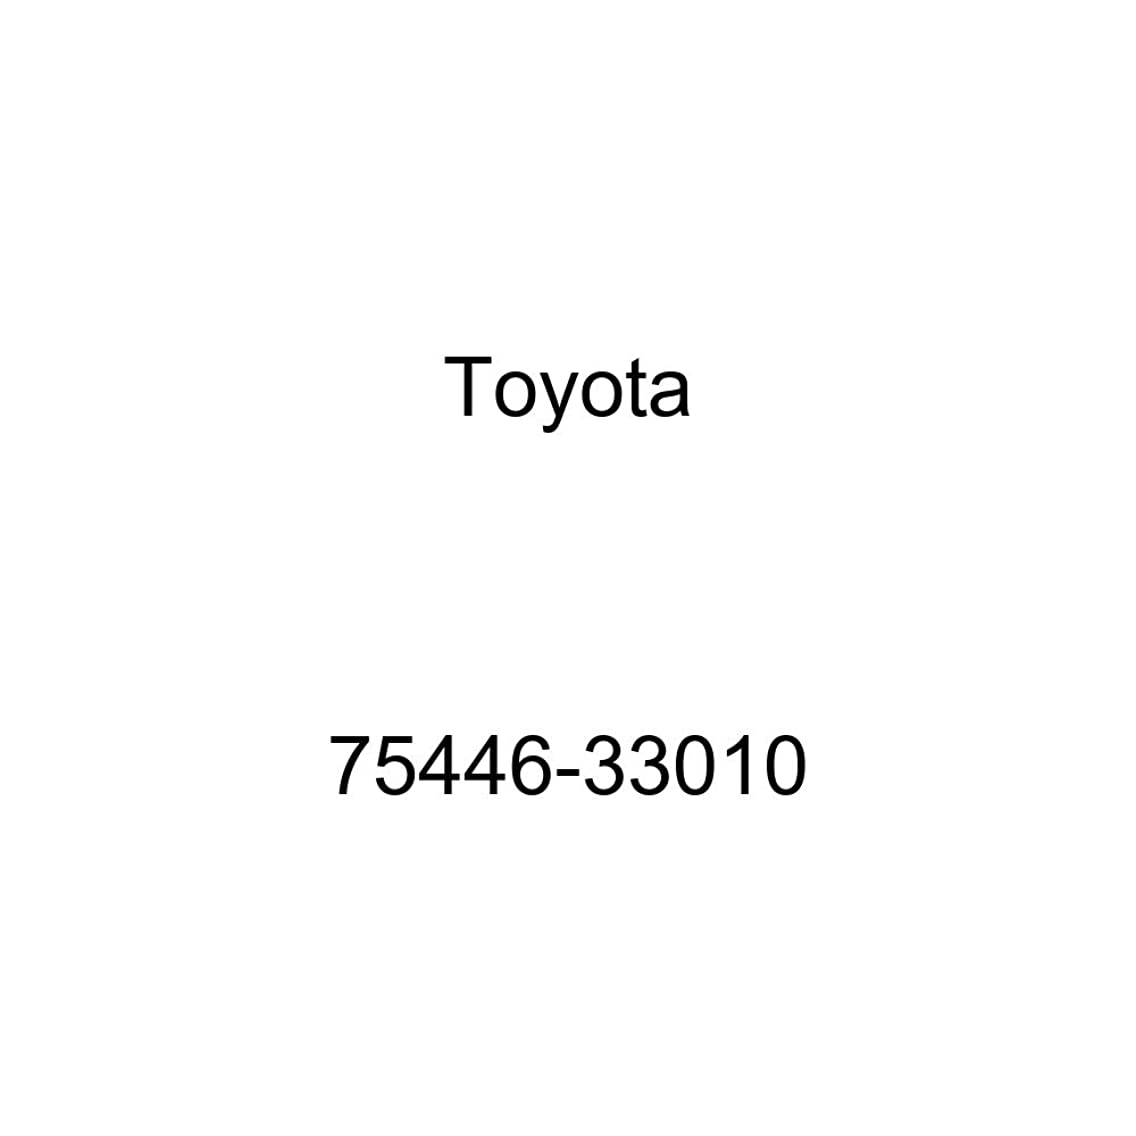 Toyota 75446-33010 Luggage Compartment Door Name Plate